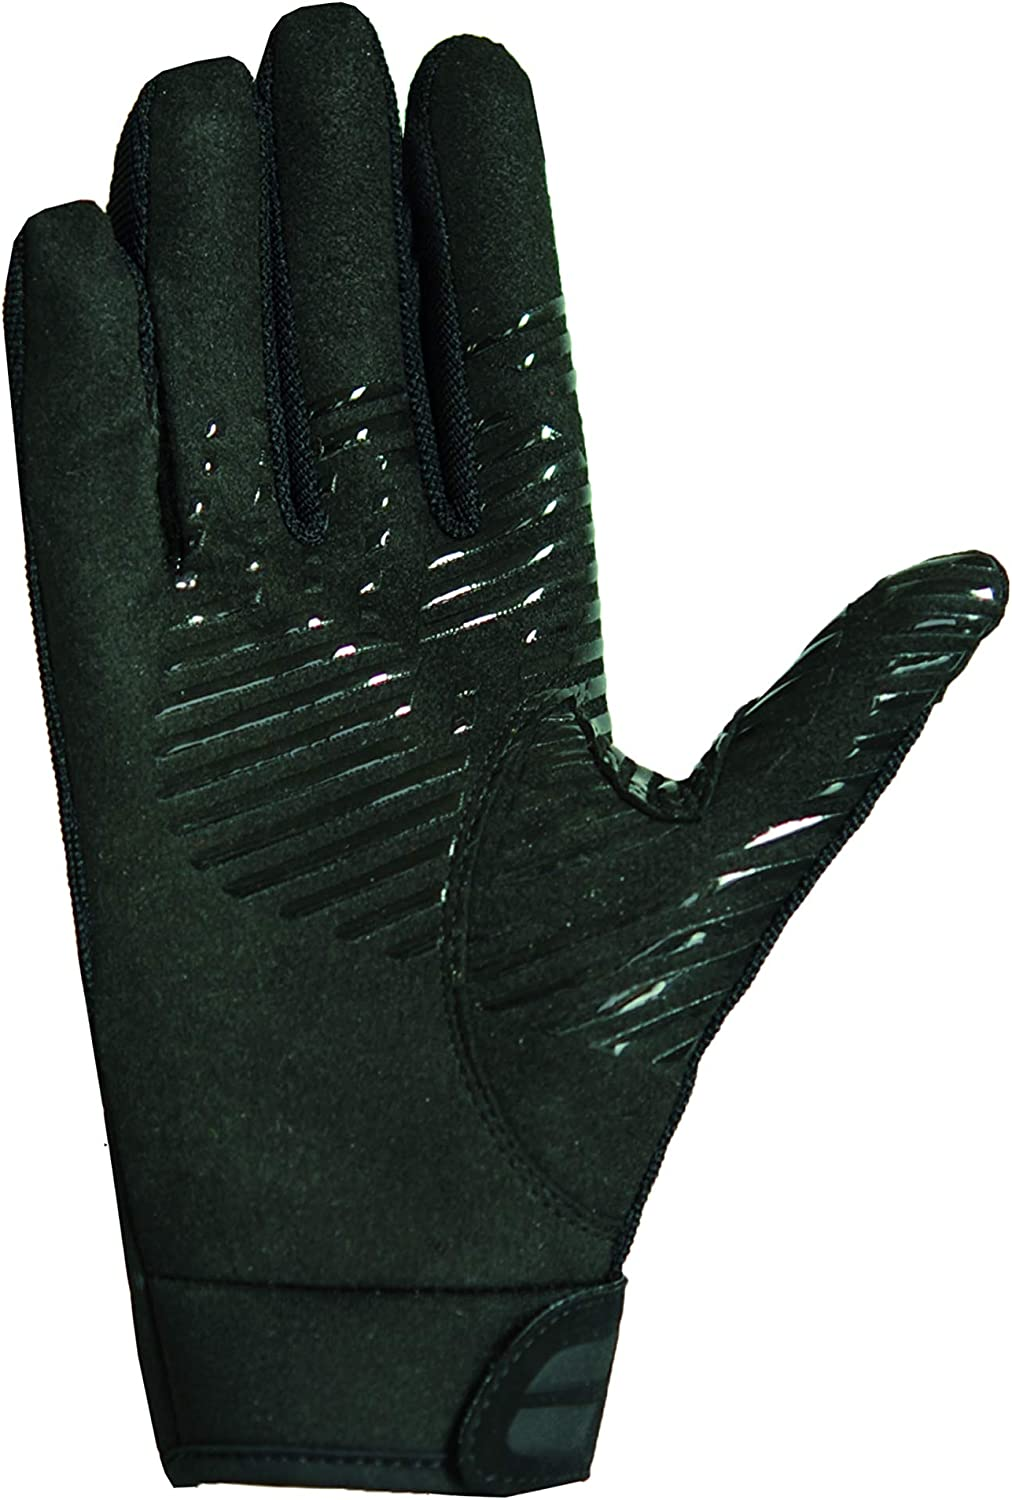 Roeckl Sports Milas Winter Riding Gloves Lined Unisex Size 6-11